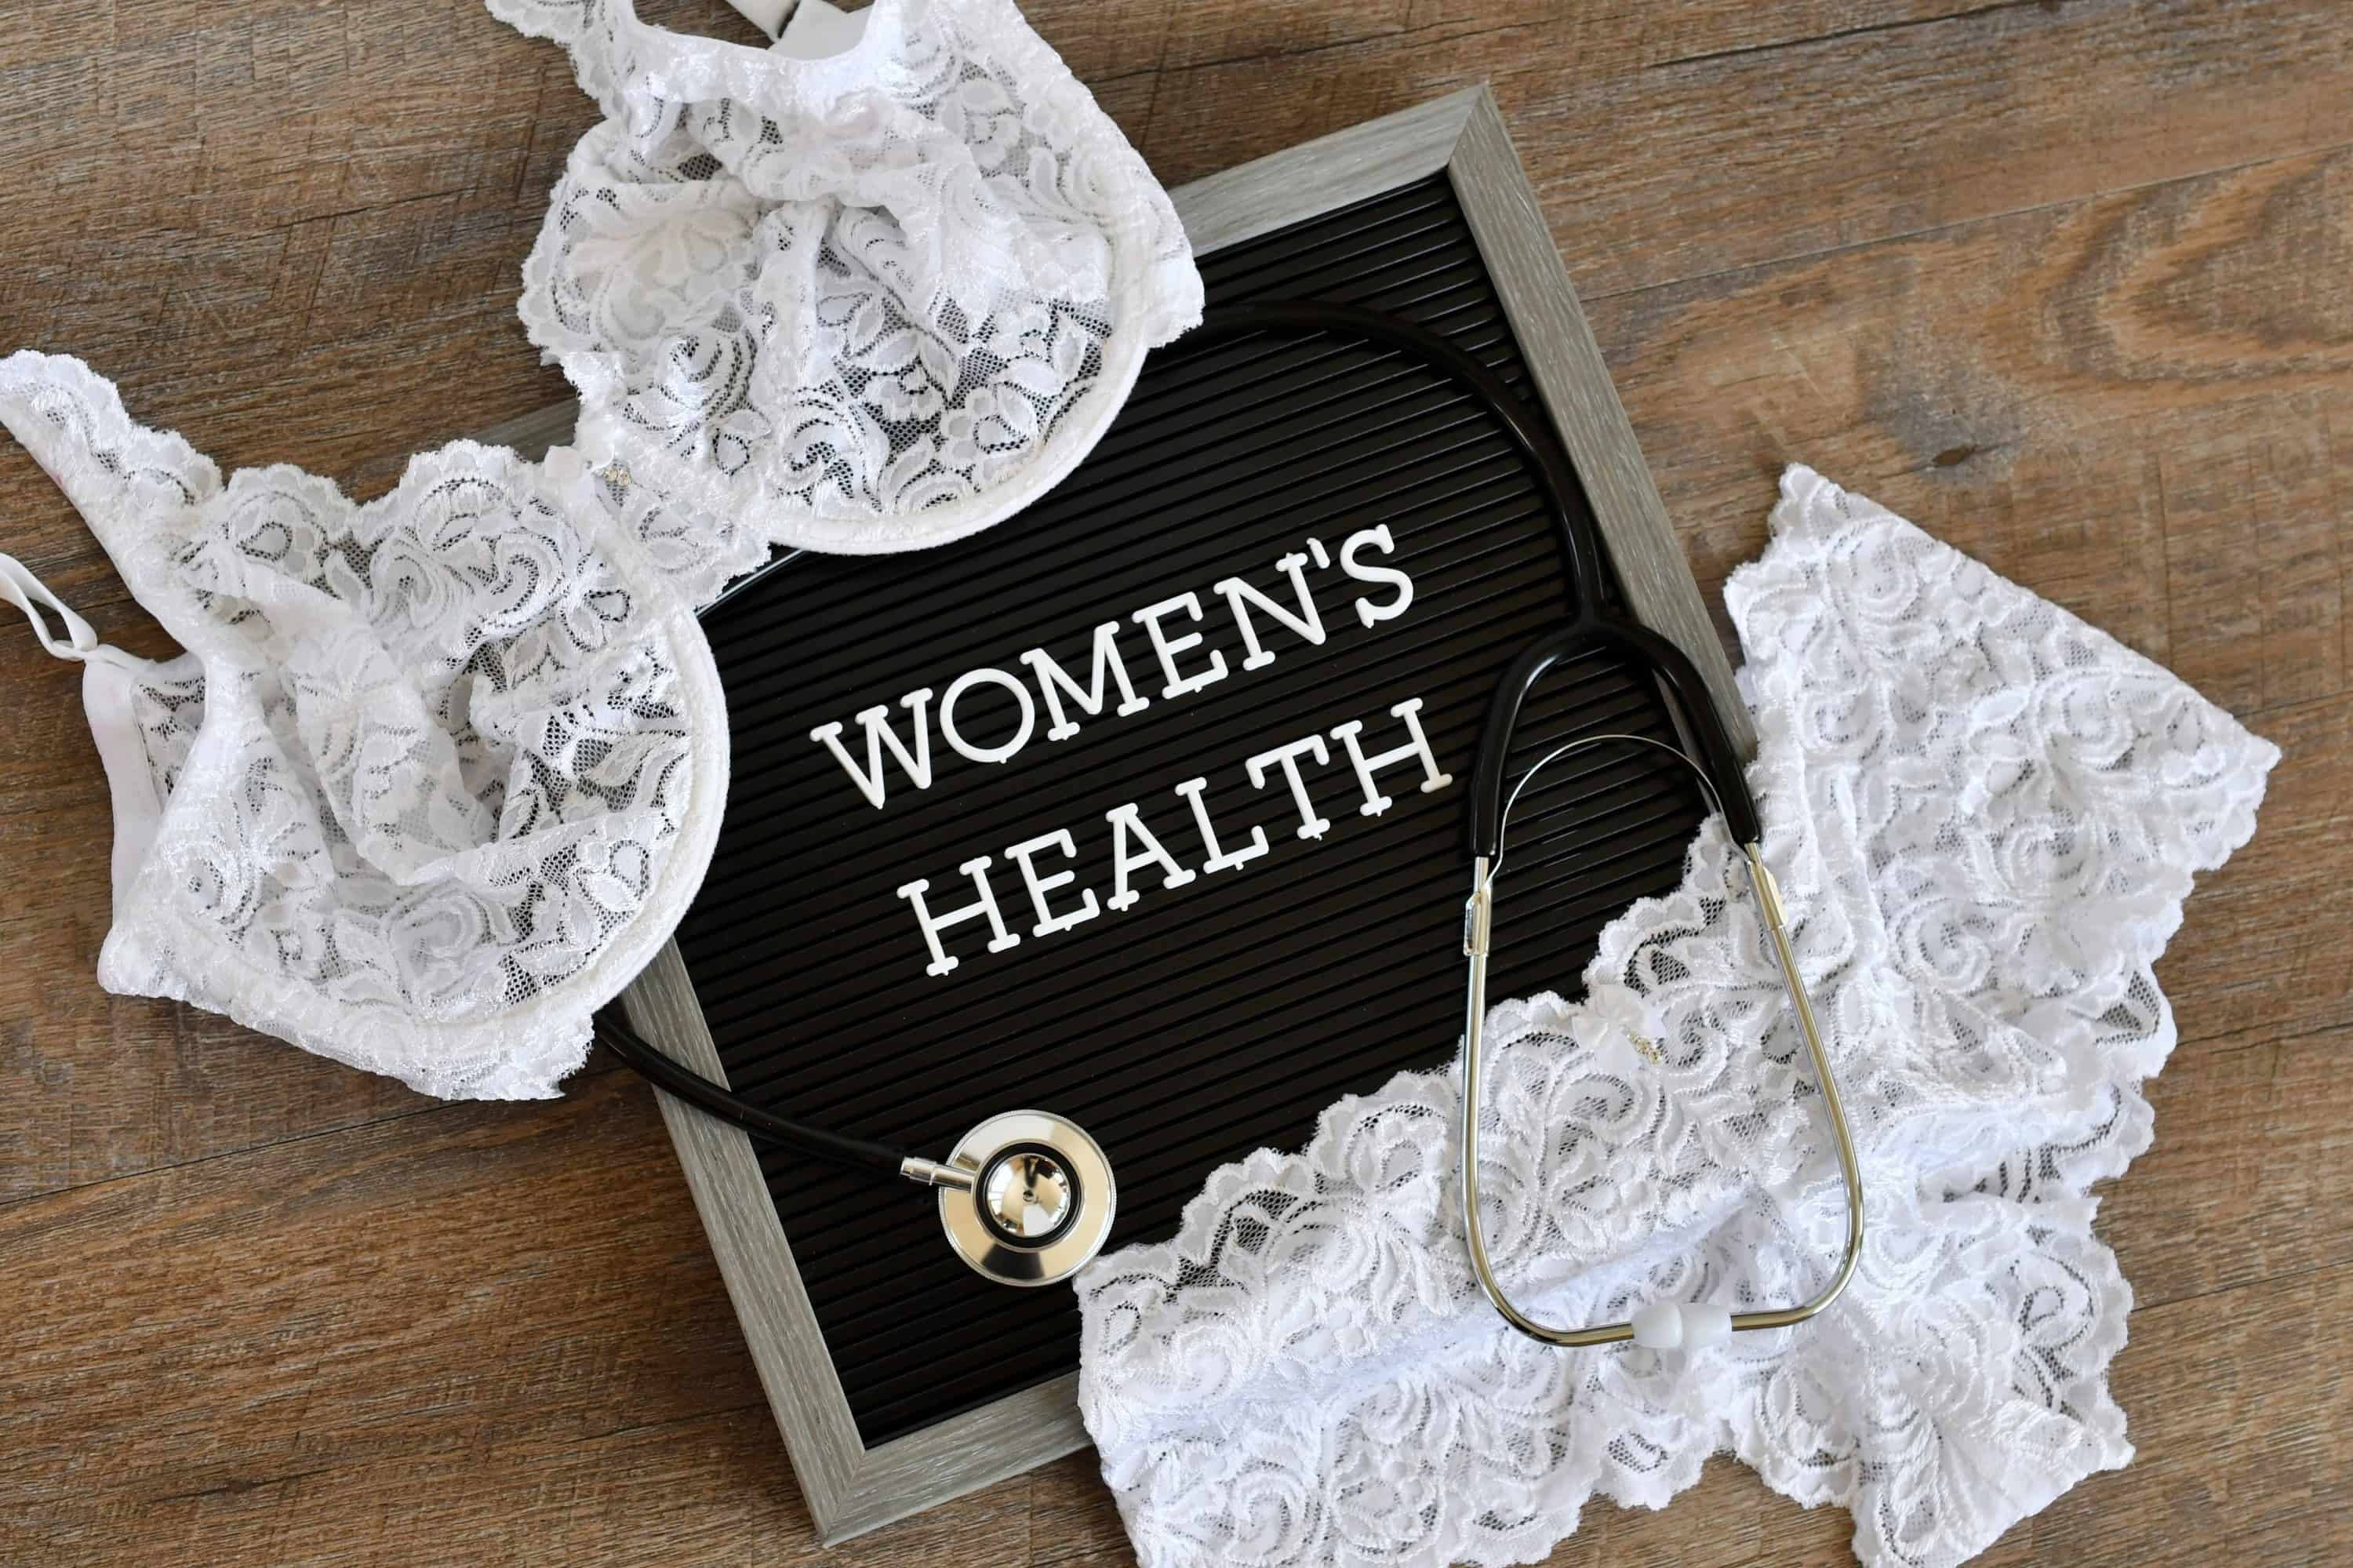 Womens health message board sign